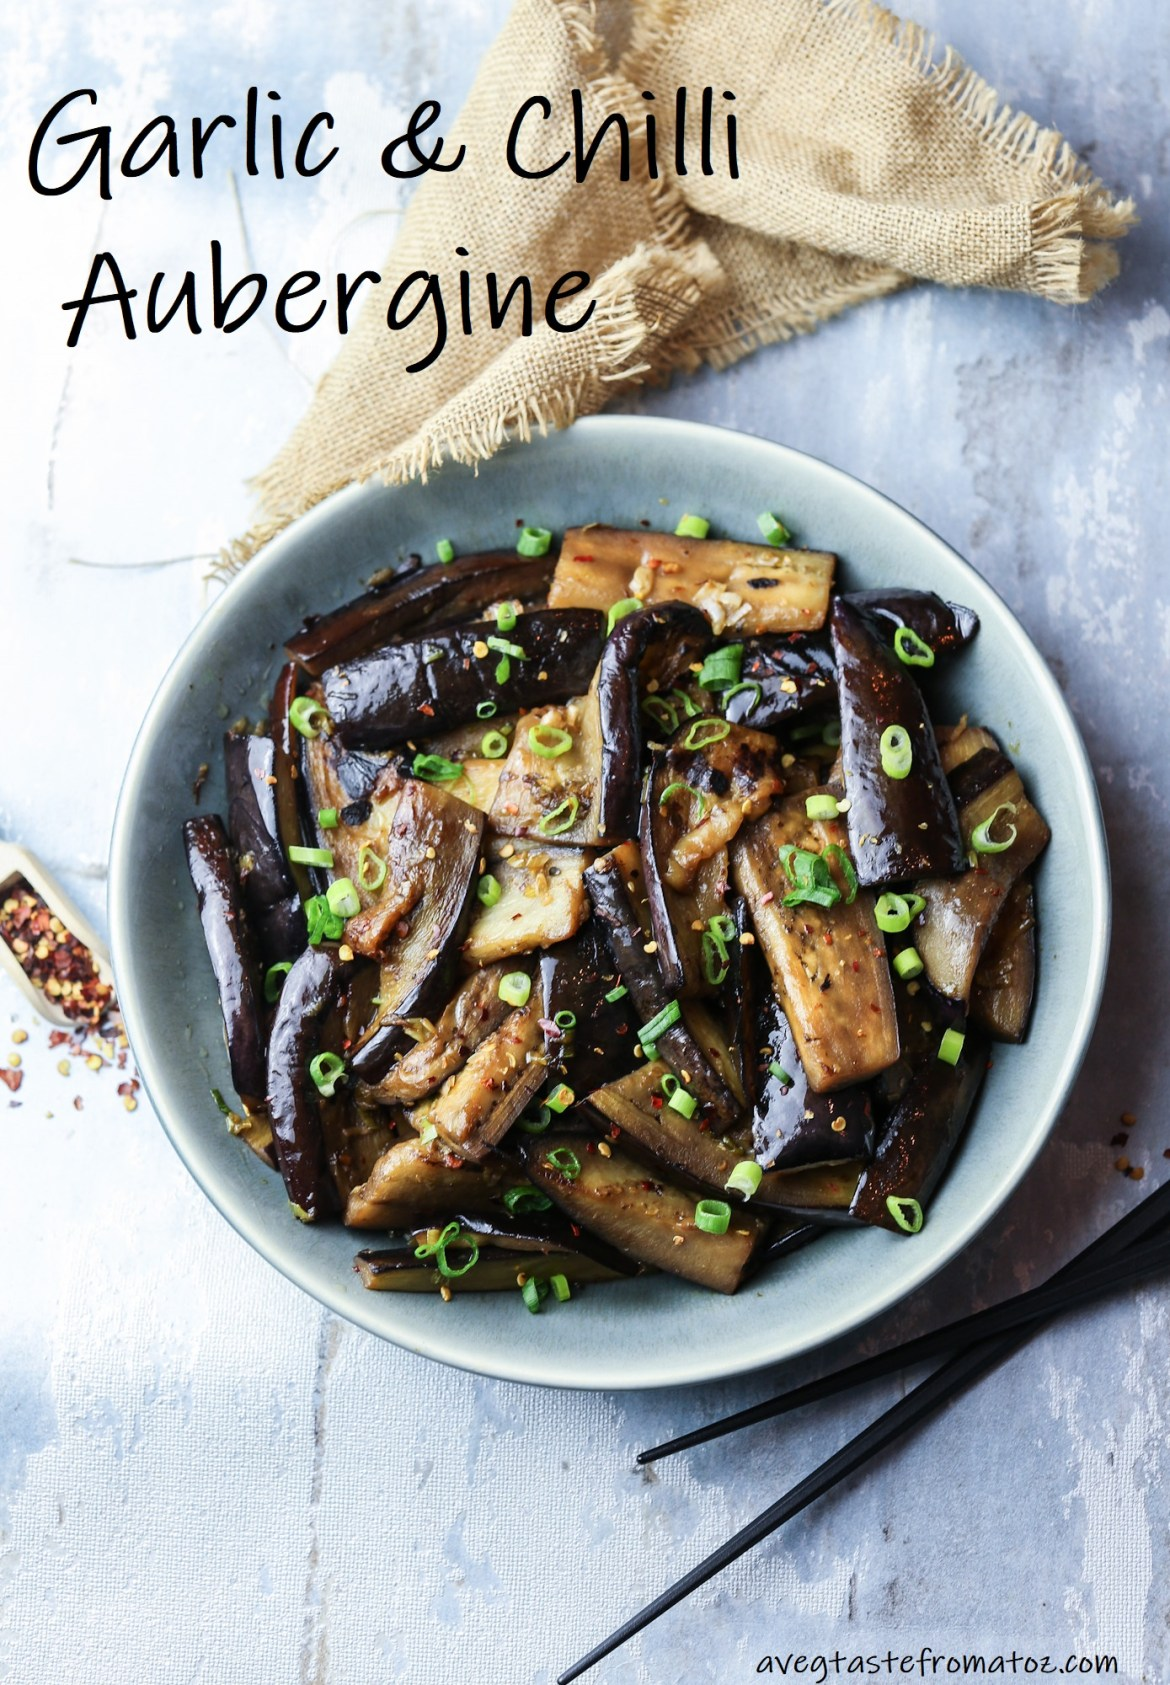 This easy aubergine dish is enriched flavoured with garlic and chilli and makes the perfect Asian-inspired side to vegan noodles or tofu dishes. #asian #chinese #japanese #eggplant #aubergine #glutenfree #vegan #easy #spicy #sidedish #garlic #onion